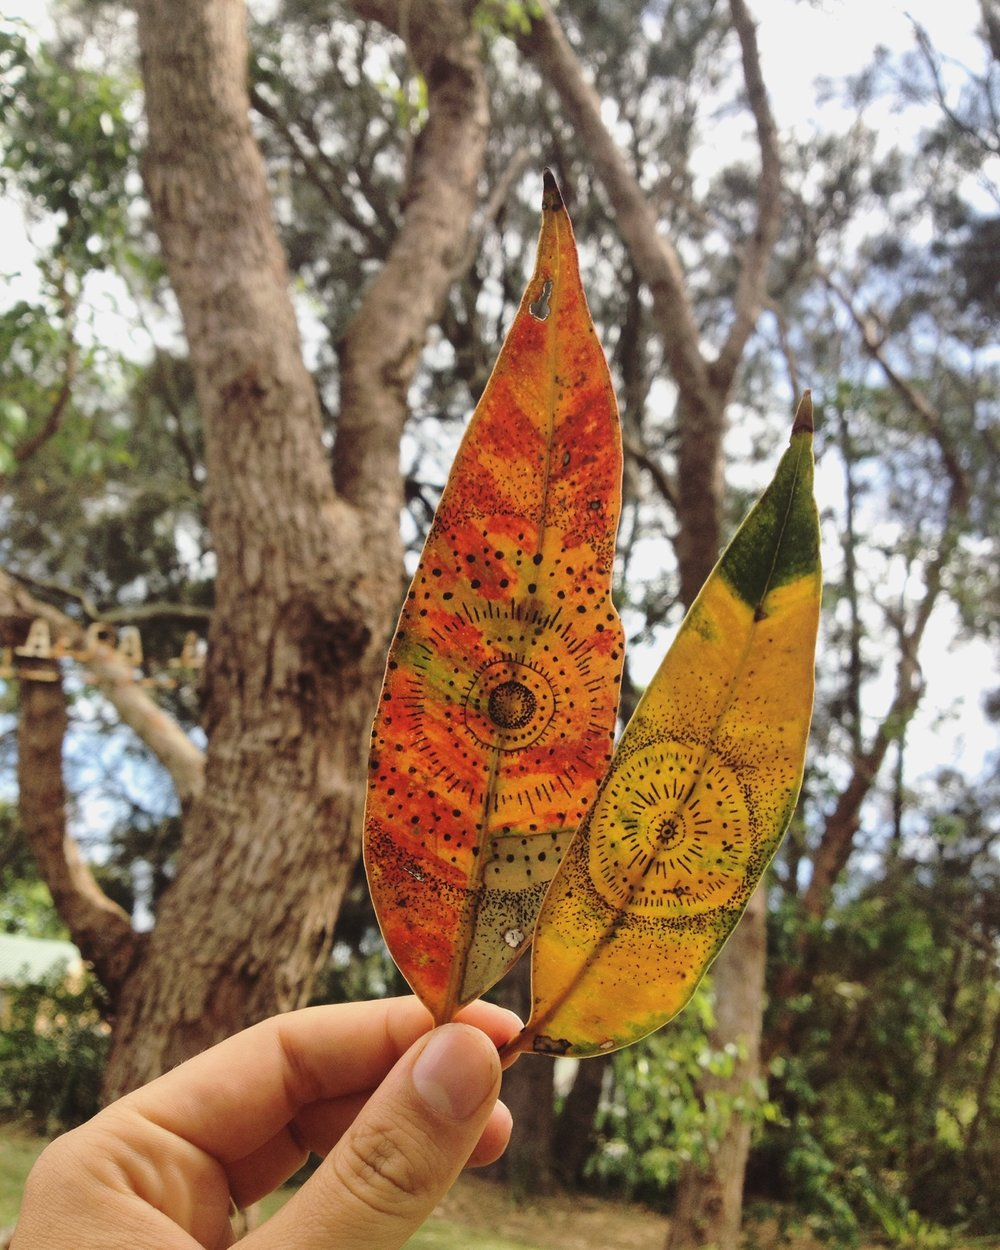 I love drawing on leaves that I find while hiking